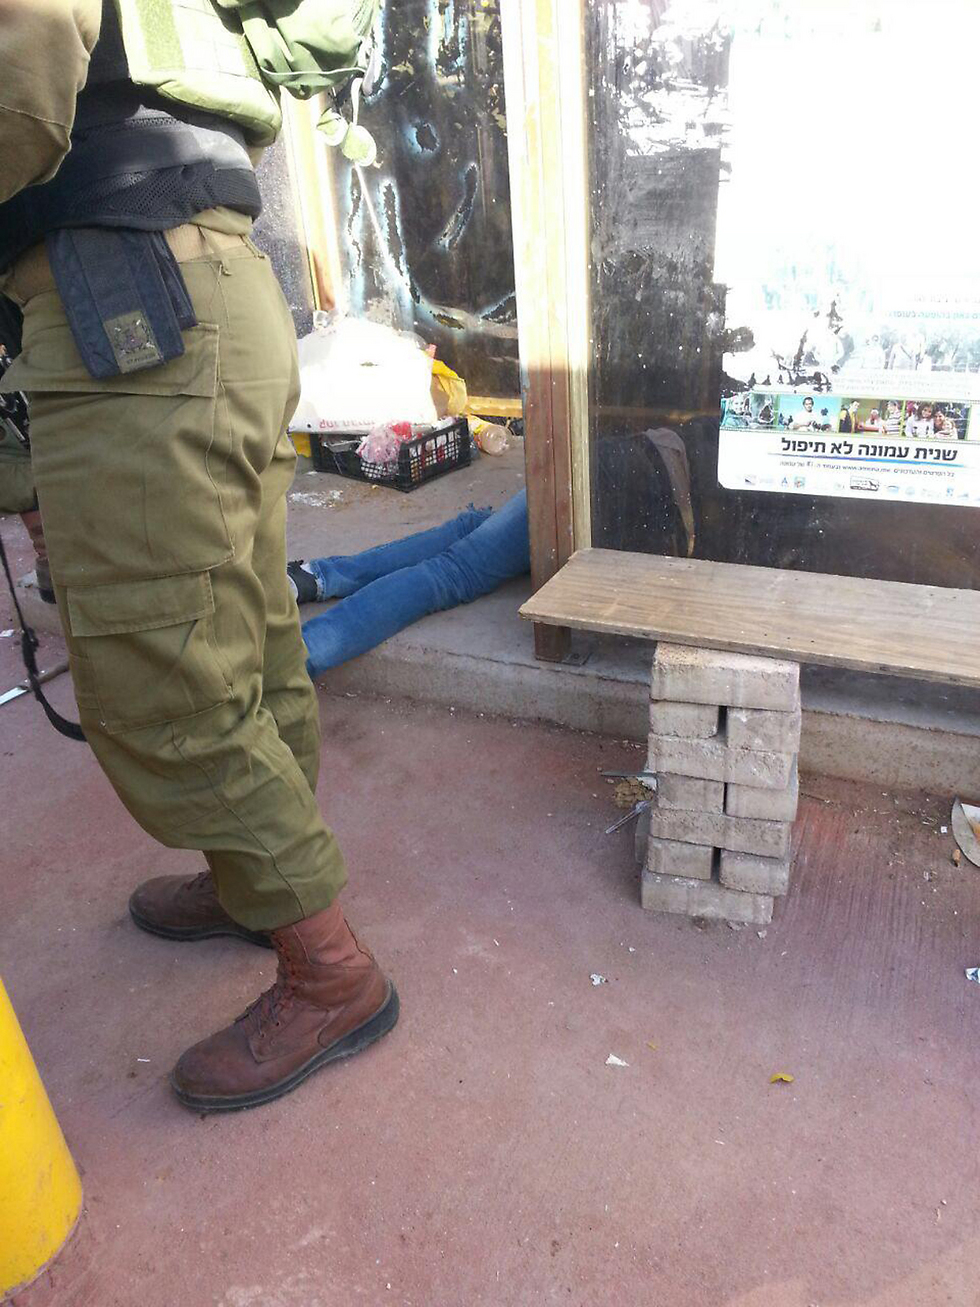 Terrorist sprawled on the floor after being shot to death (Photo: Ofra Youth)